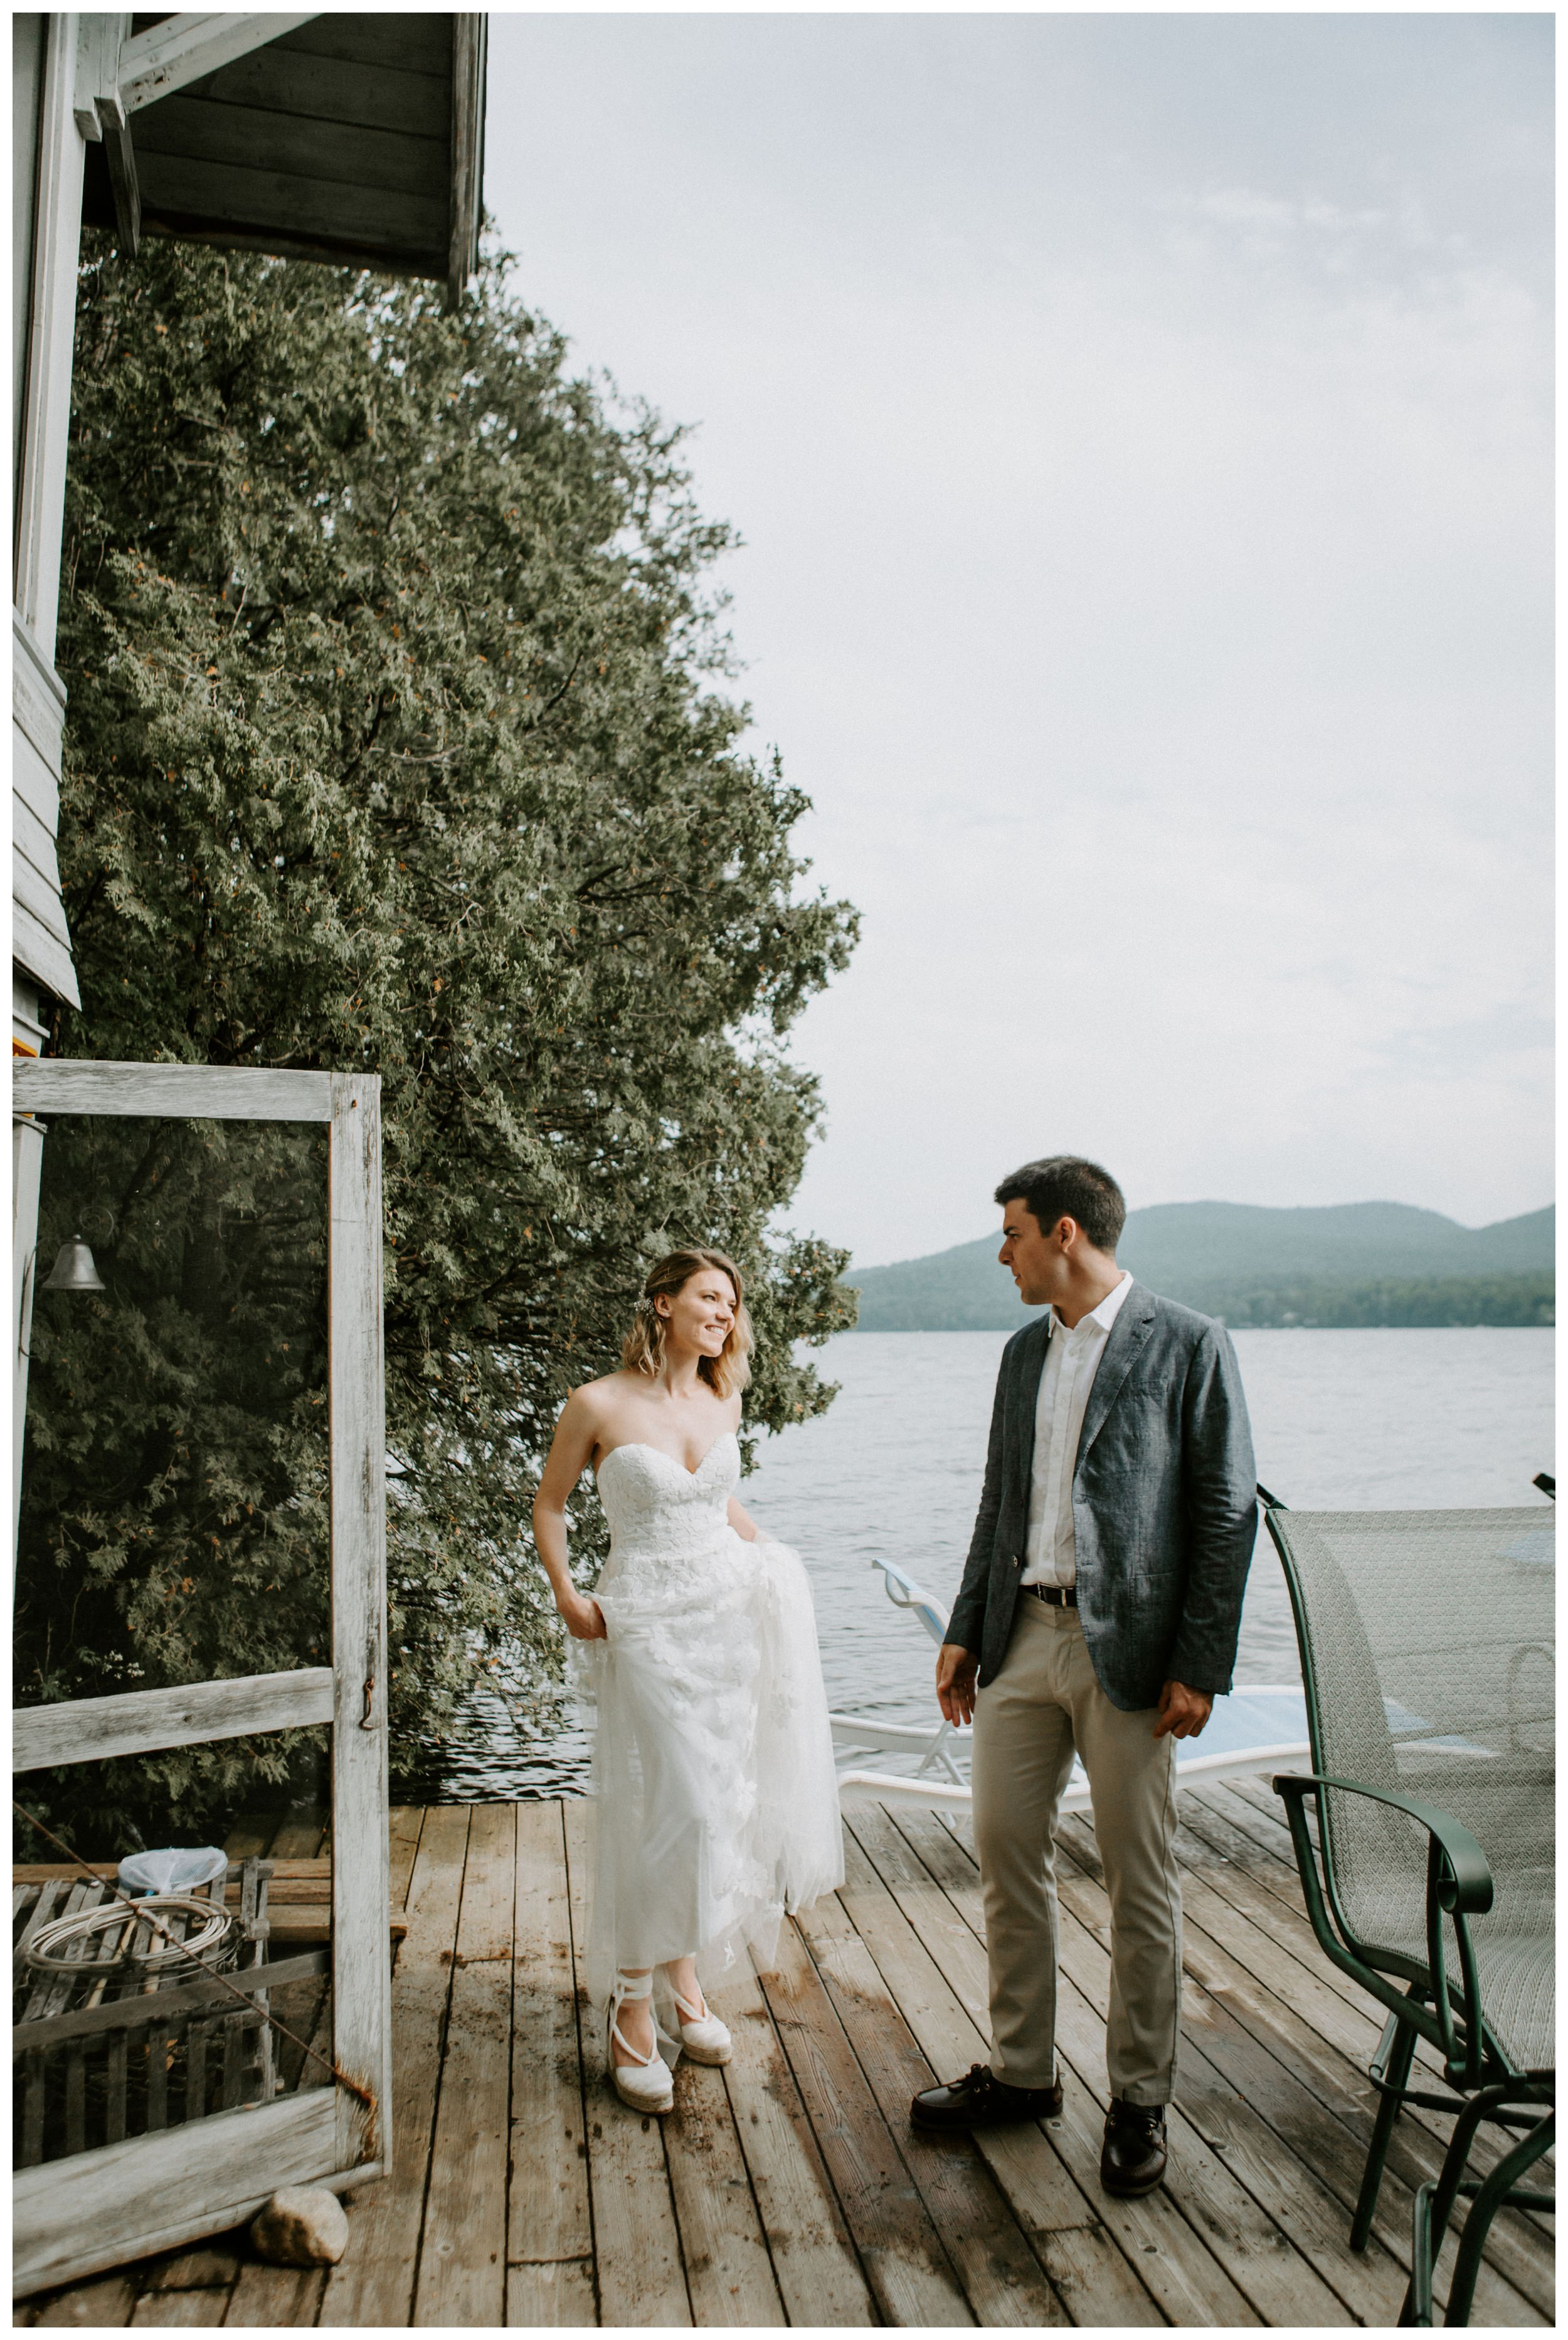 intimate-lakeside-wedding-adirondack-mountains46.jpg